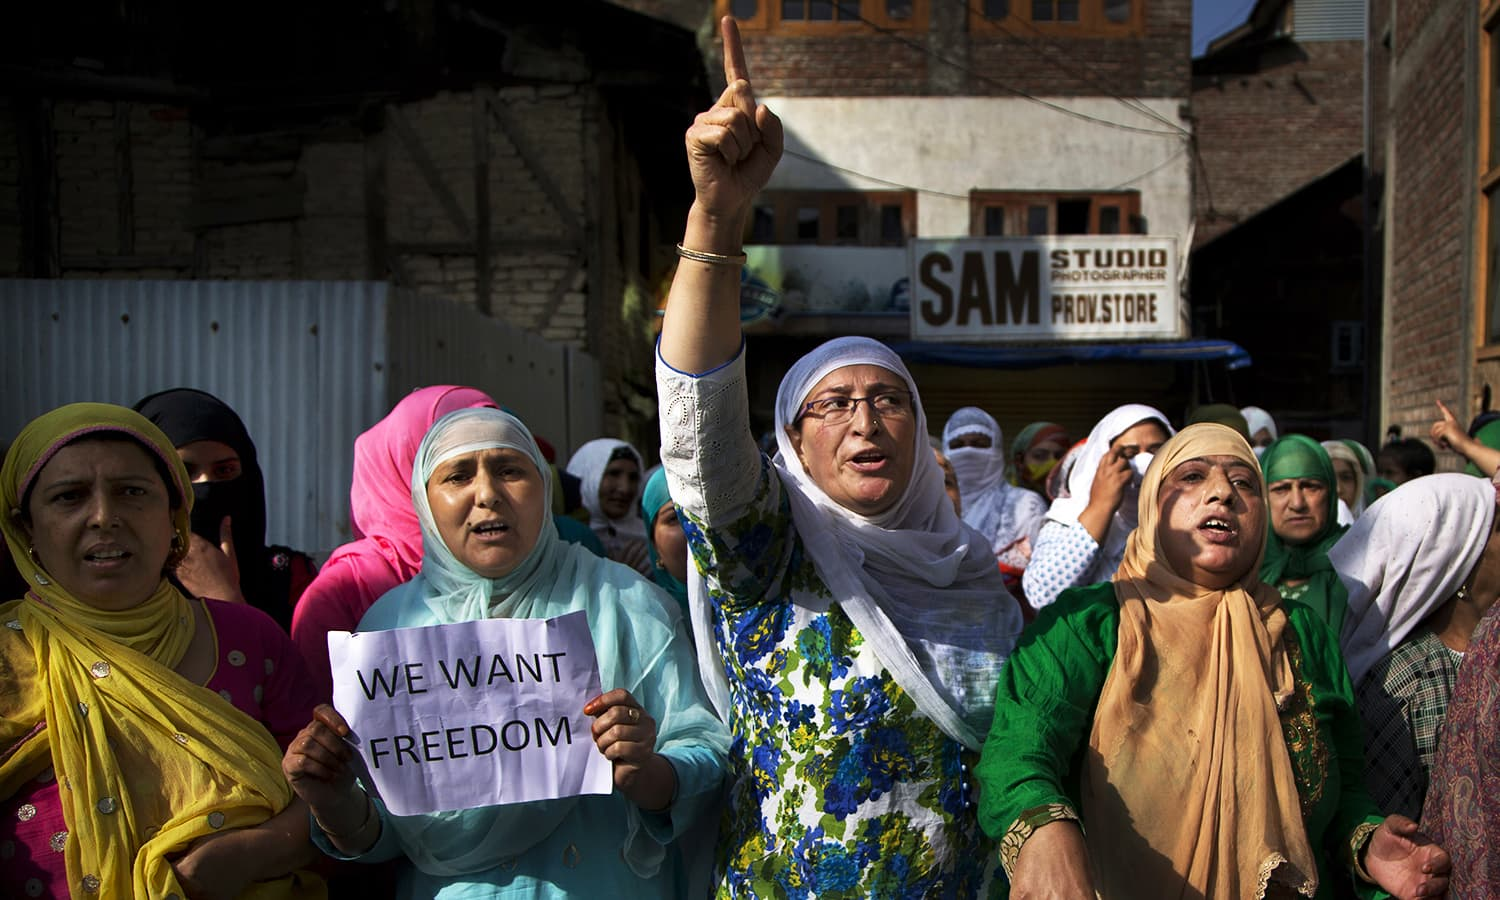 Kashmiri women shout freedom slogans during a protest after Eid prayers in Srinagar, India-held Kashmir, Tuesday, Sept. 13, 2016. ─ AP